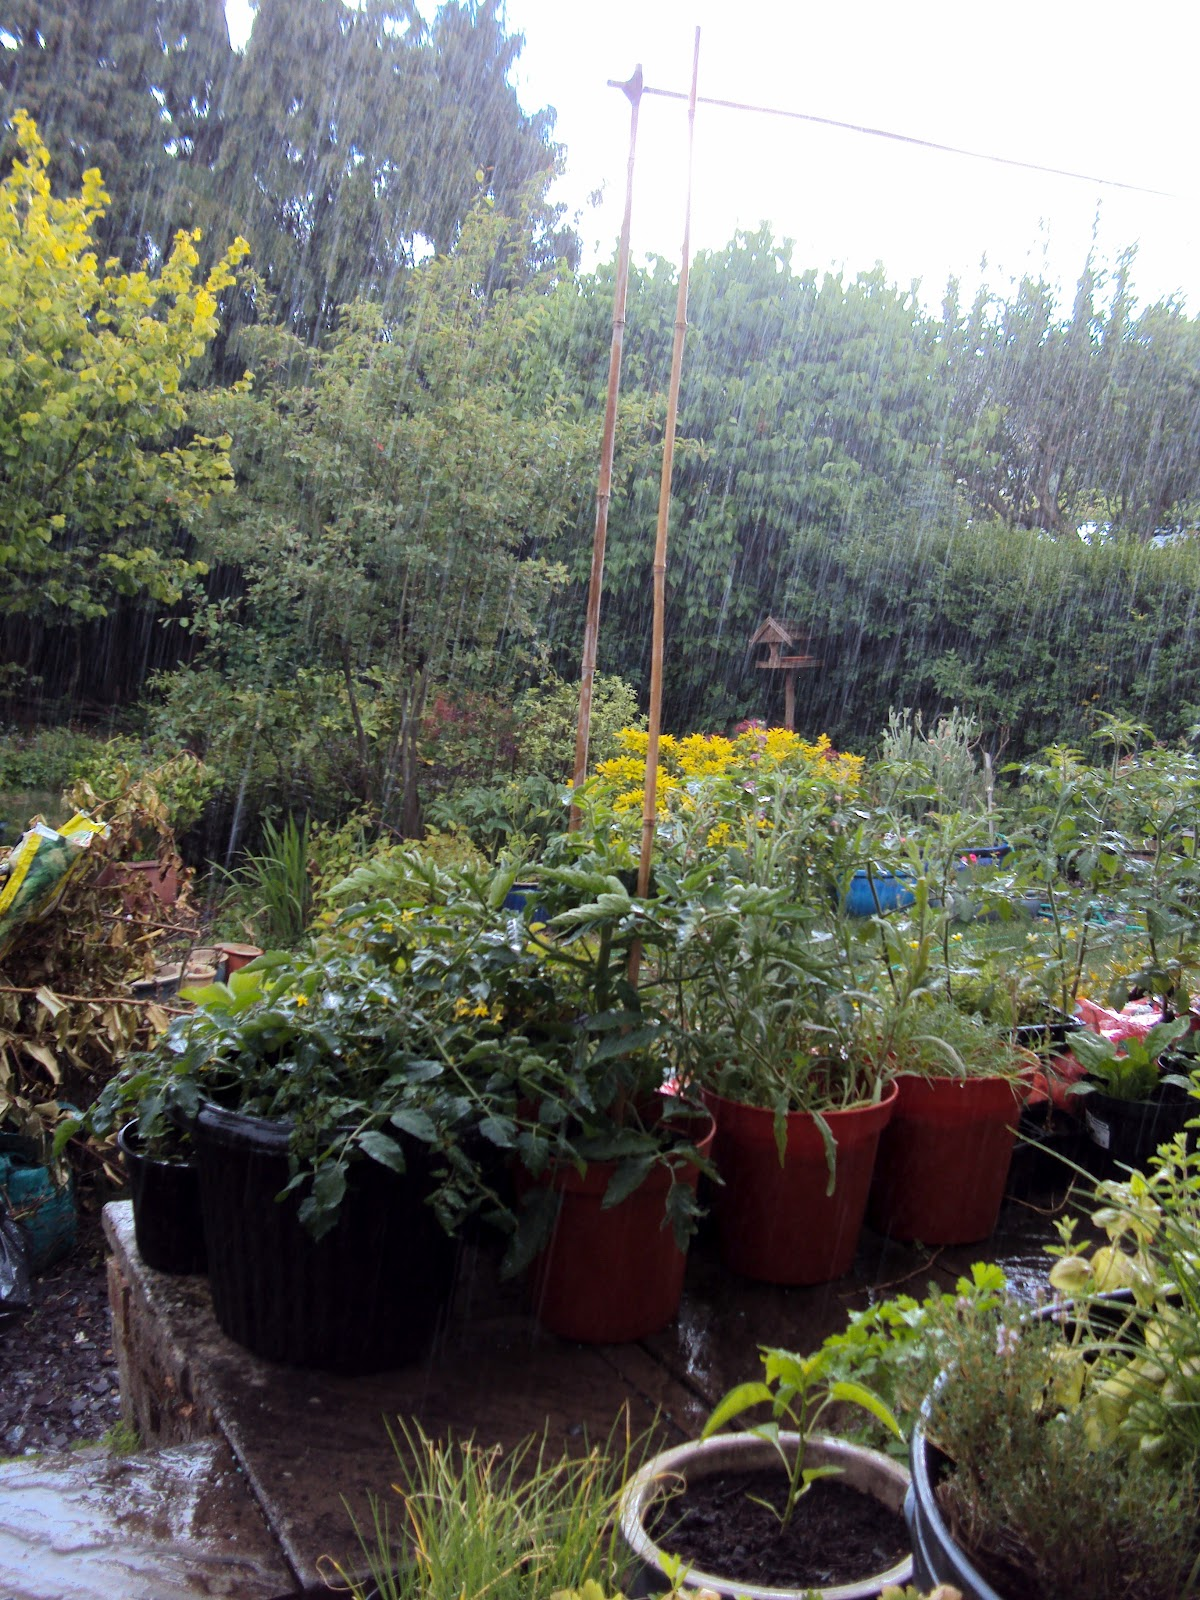 ... regularly give the garden a long soaking with a hose during dry periods.